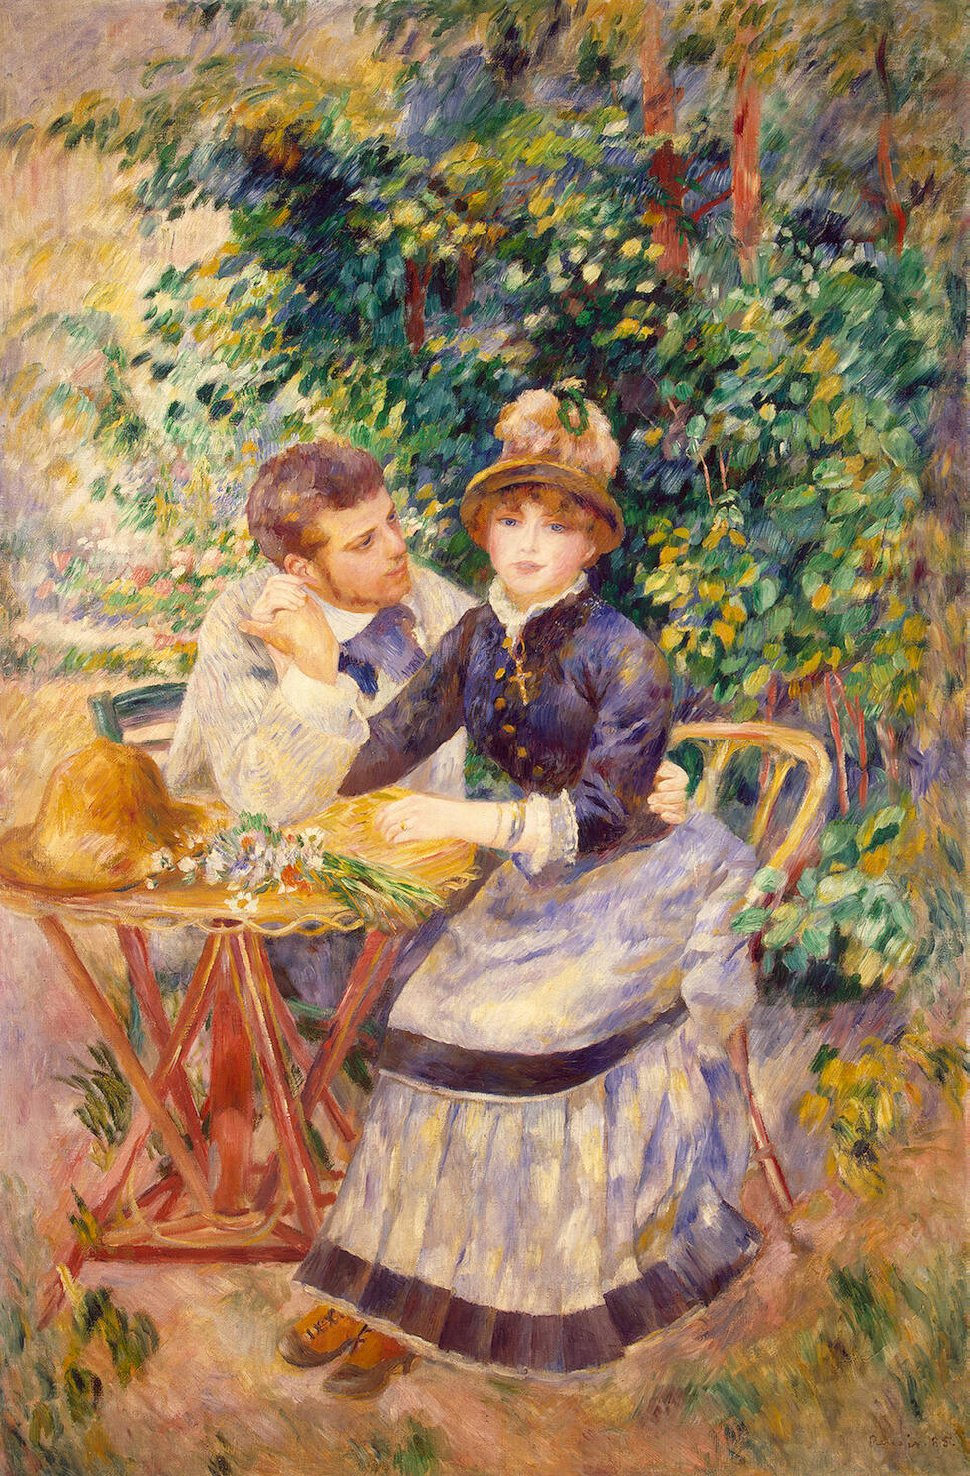 Pierre-Auguste_Renoir_-_In_the_Garden.jpg